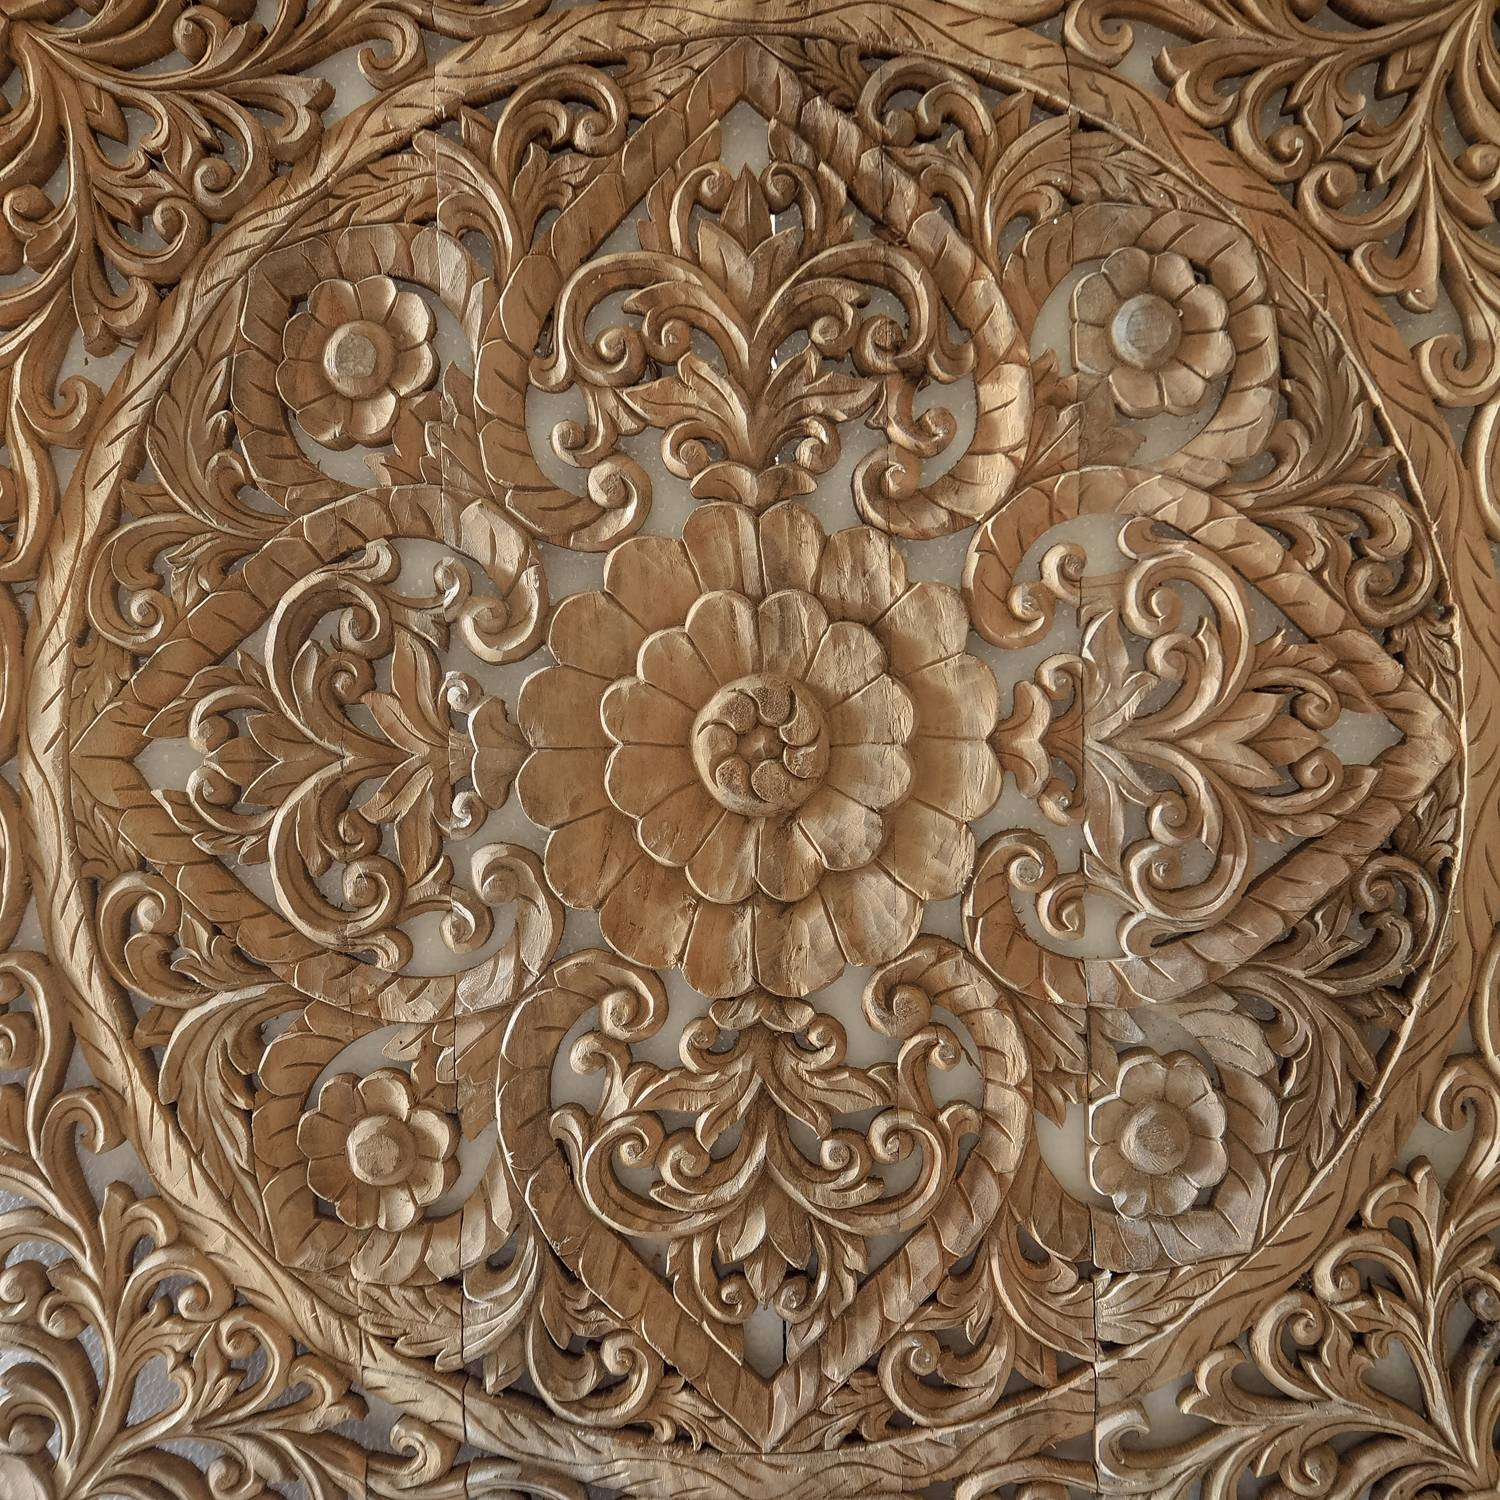 Hand Carved Wall Panel From Bali – Siam Sawadee With Regard To 2017 Wood Carved Wall Art Panels (View 11 of 25)